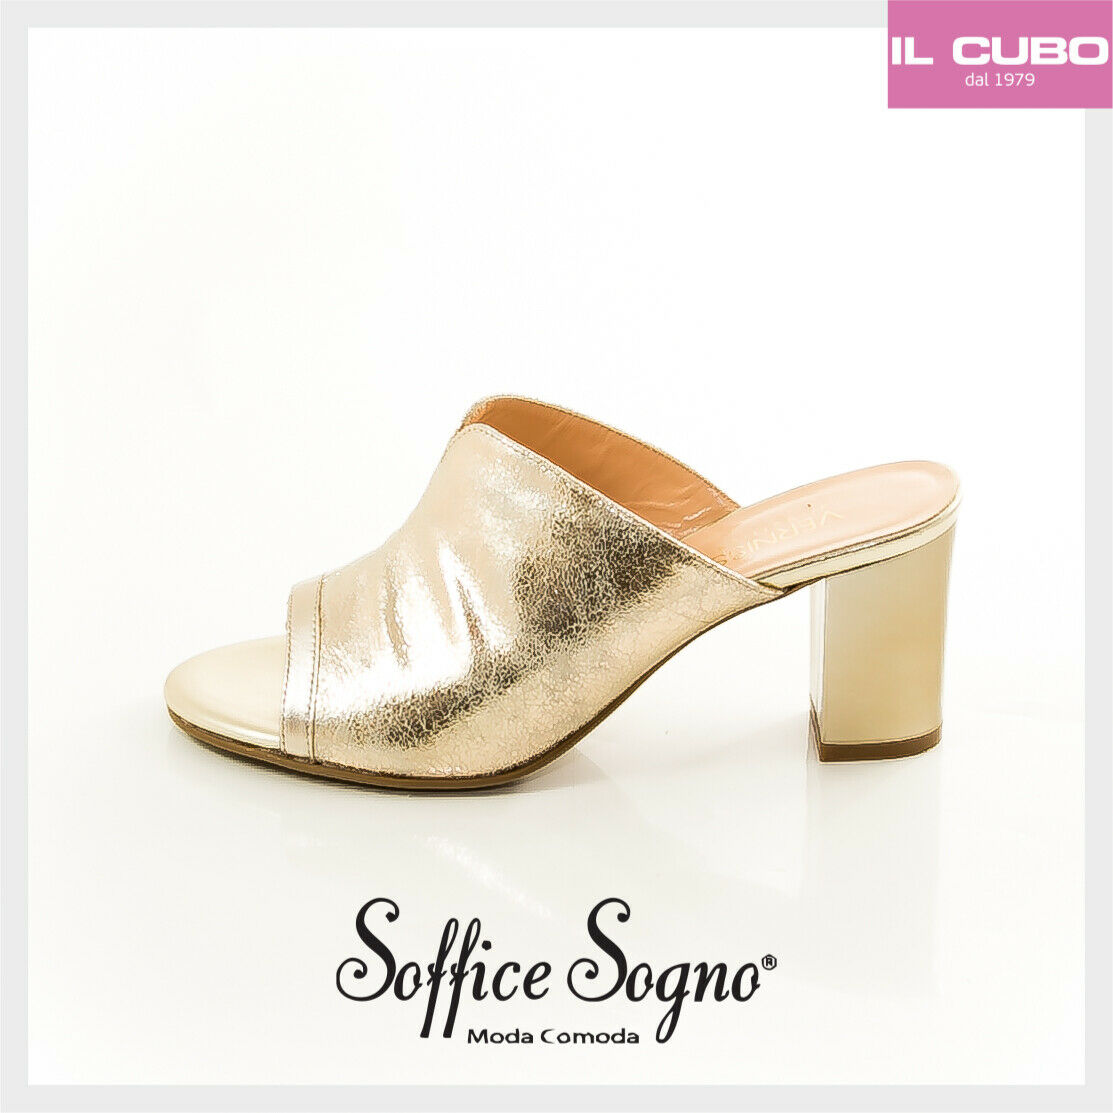 SANDALO SCALZATO femmes SOFFICE SOGNO TACCO H 7 CM CouleurE PLATINO MADE IN ITALY